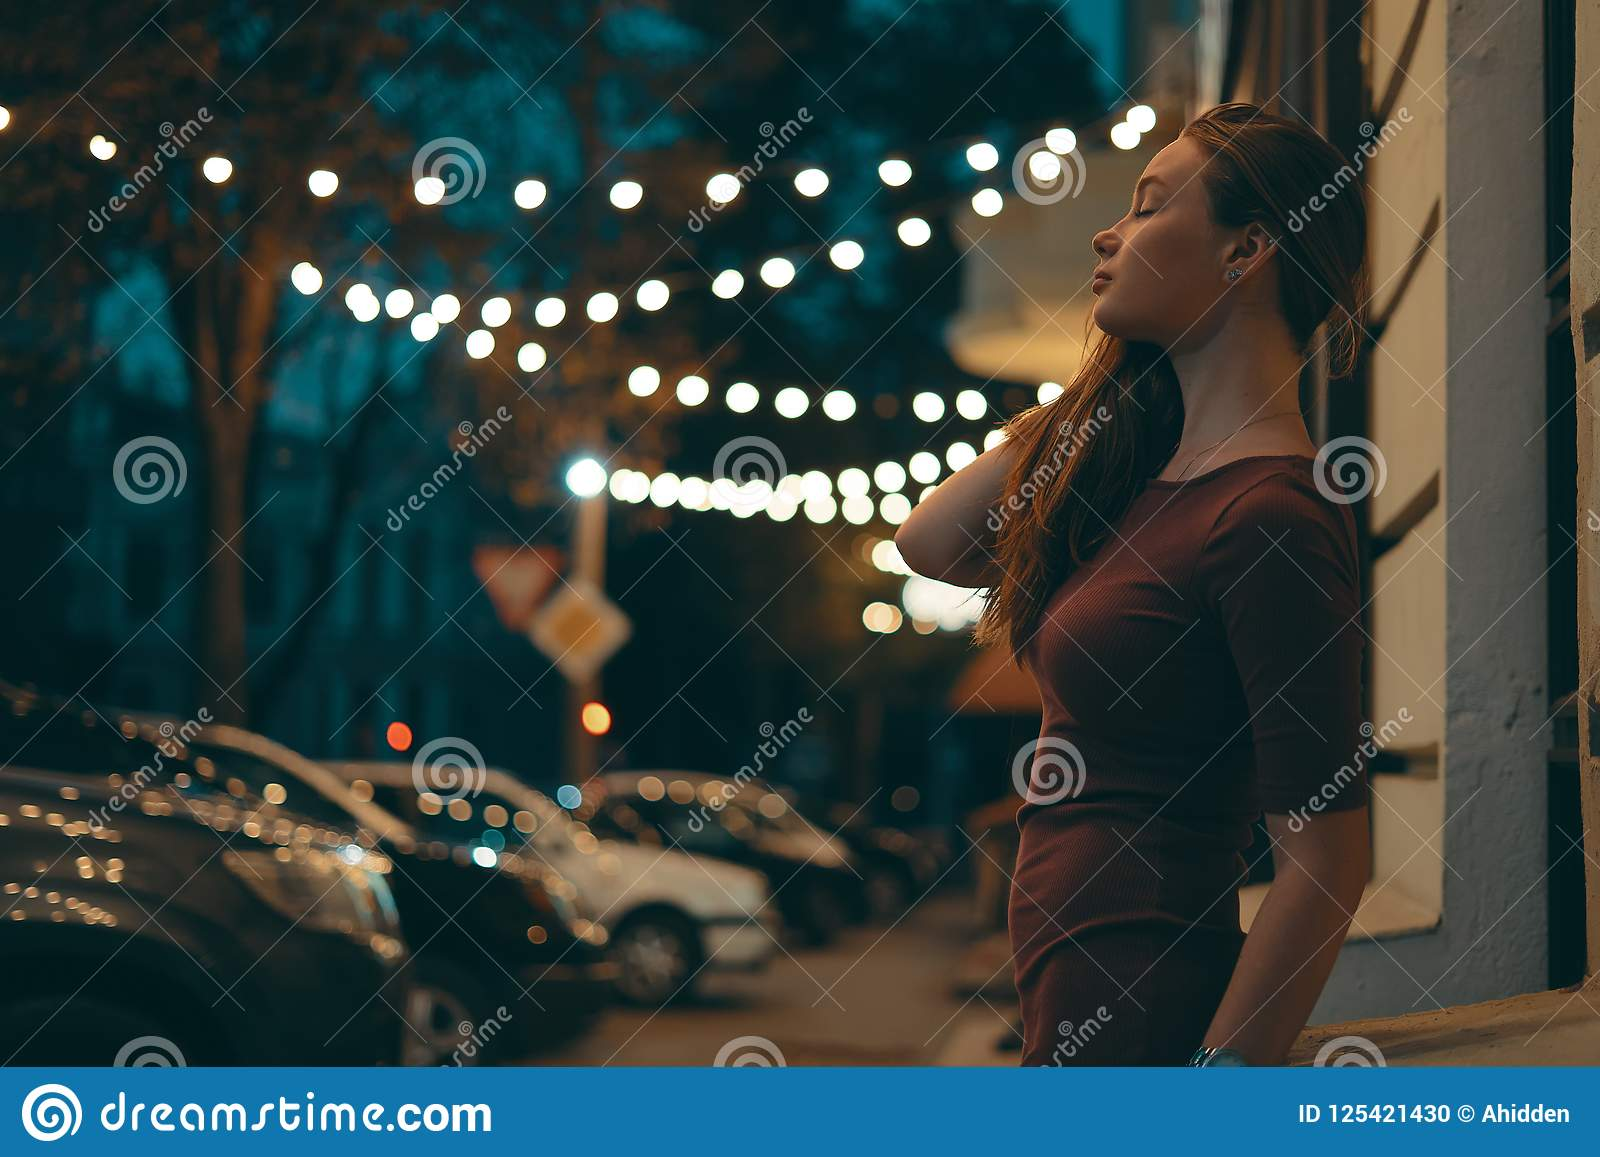 Girl Night Lights Romantic Female Portrait With City Lights In Background Stock